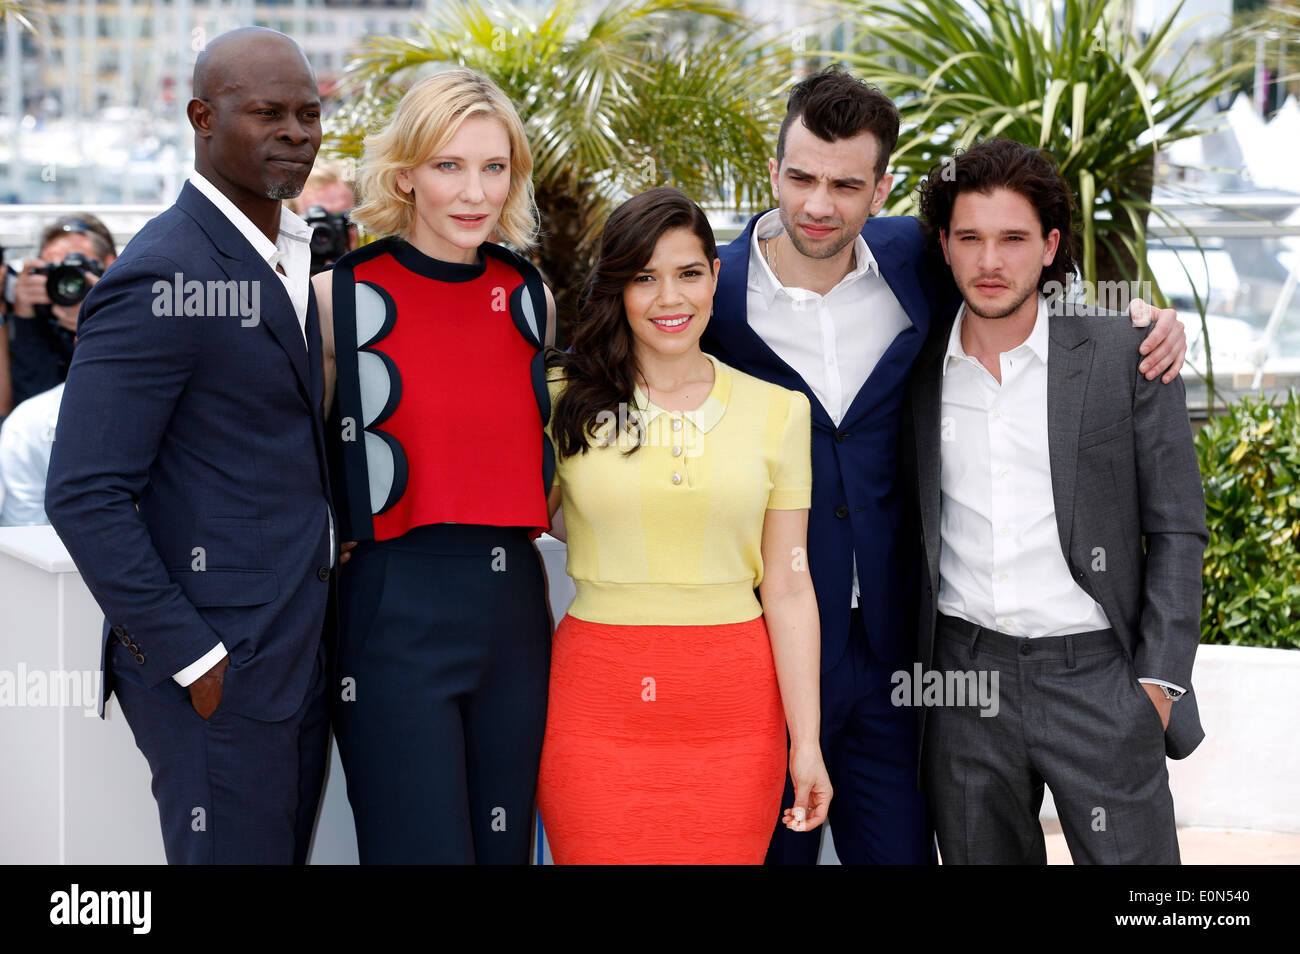 Cannes france 16th may 2014 actor djimon hounsou actress cate actor djimon hounsou actress cate blanchett actress america ferrera actors jay baruchel and kit harington during the how to train your dragon 2 ccuart Image collections